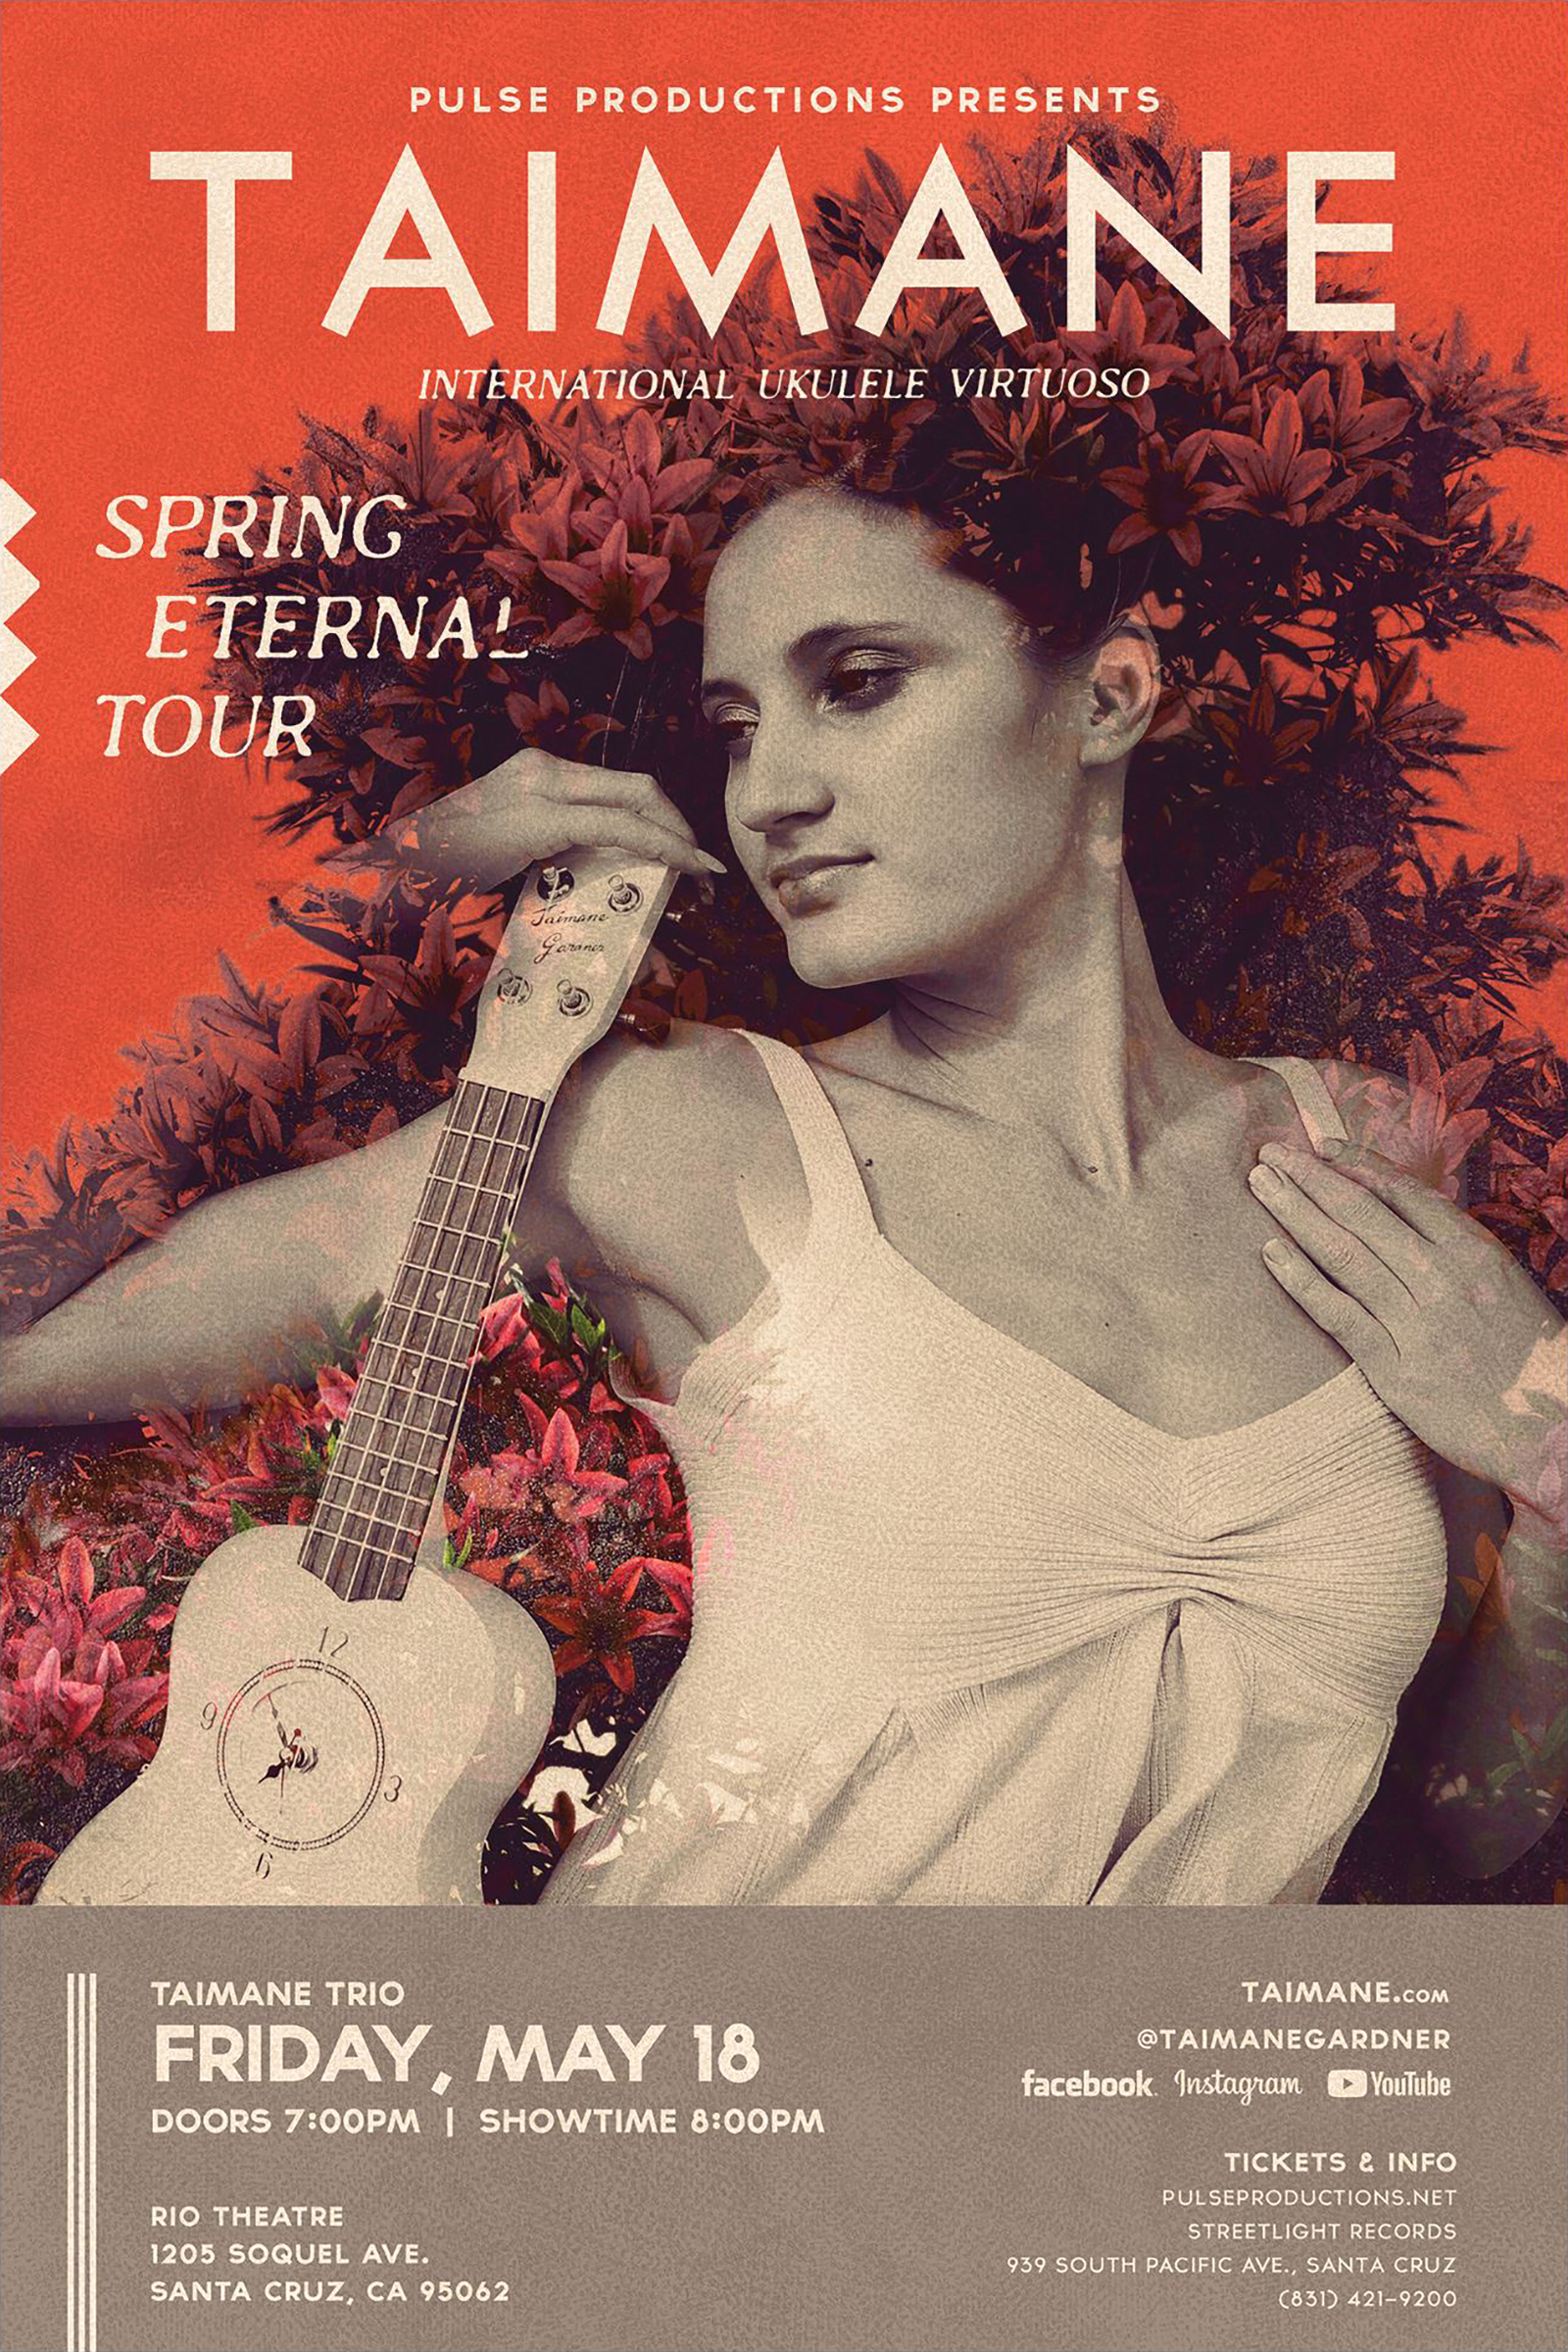 Poster - Web-Ready Large BRIGHT Taimane Spring Eternal - Santa Cruz 24x36_RGB_1600x2400.jpg